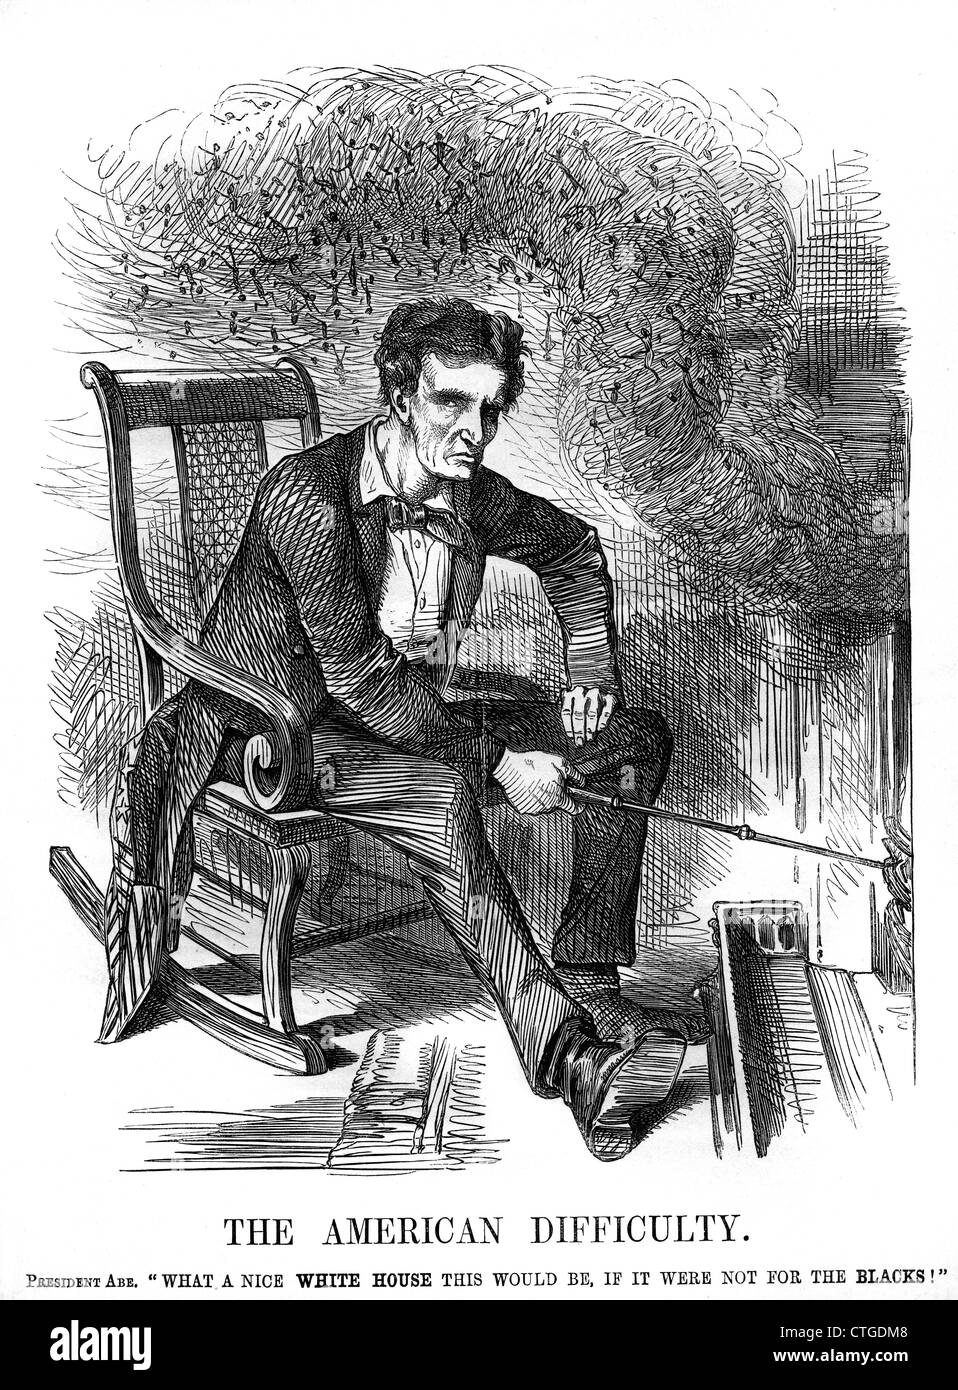 1860s 1861 PUNCH CARTOON ABRAHAM LINCOLN FIREPLACE SMOKE THE AMERICAN DIFFICULTY SLAVERY RELATED TO SMOKEY FIREPLACE - Stock Image